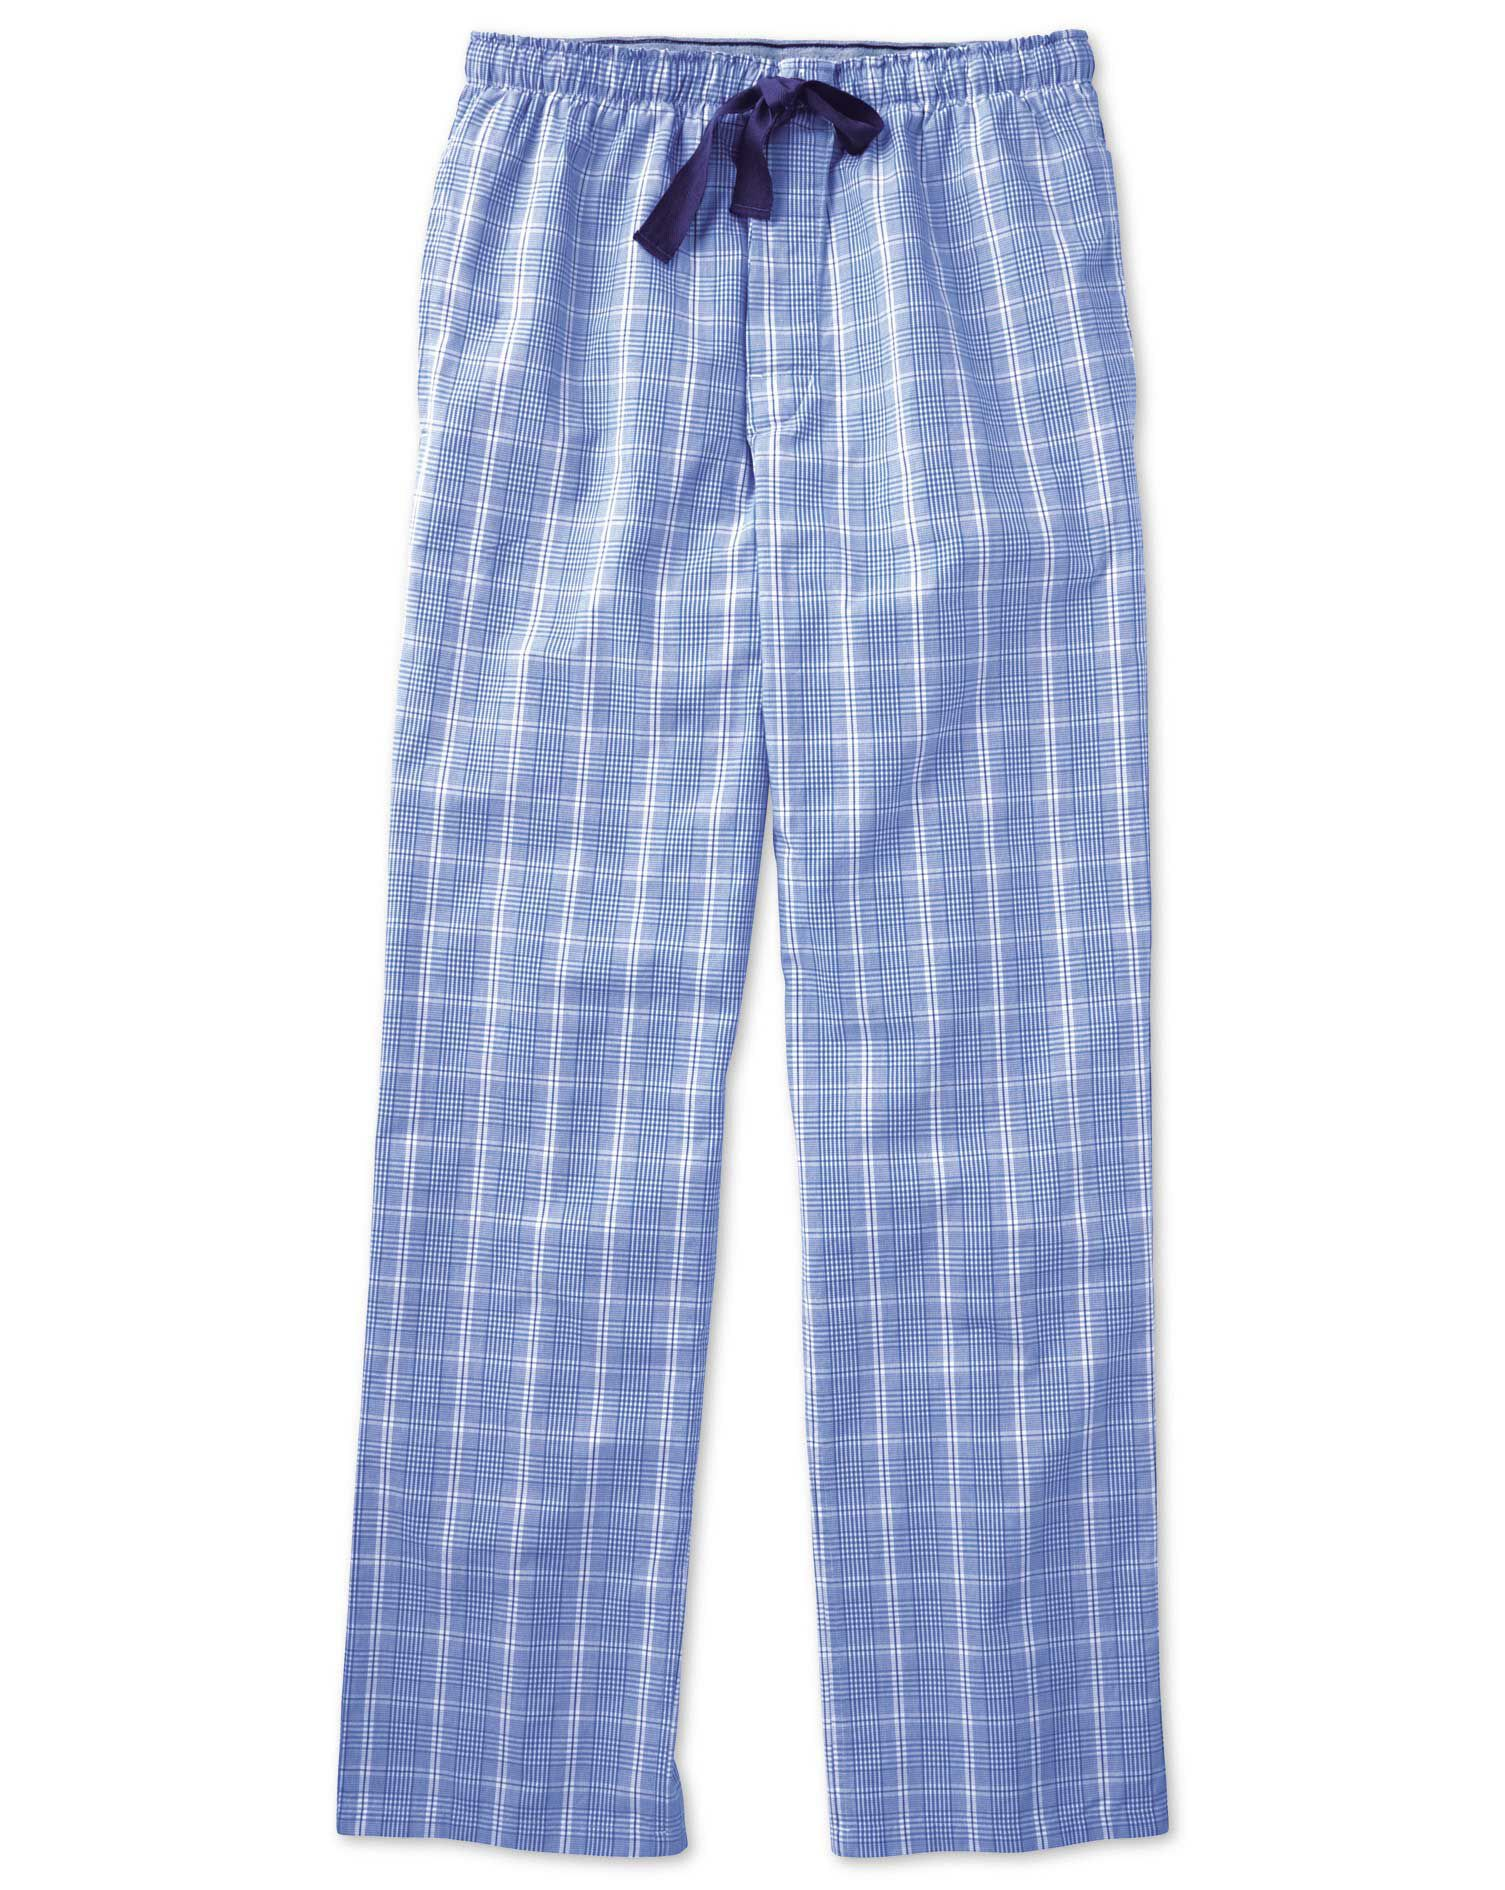 Royal Blue Prince Of Wales Cotton Pyjama Trousers Size XS by Charles Tyrwhitt